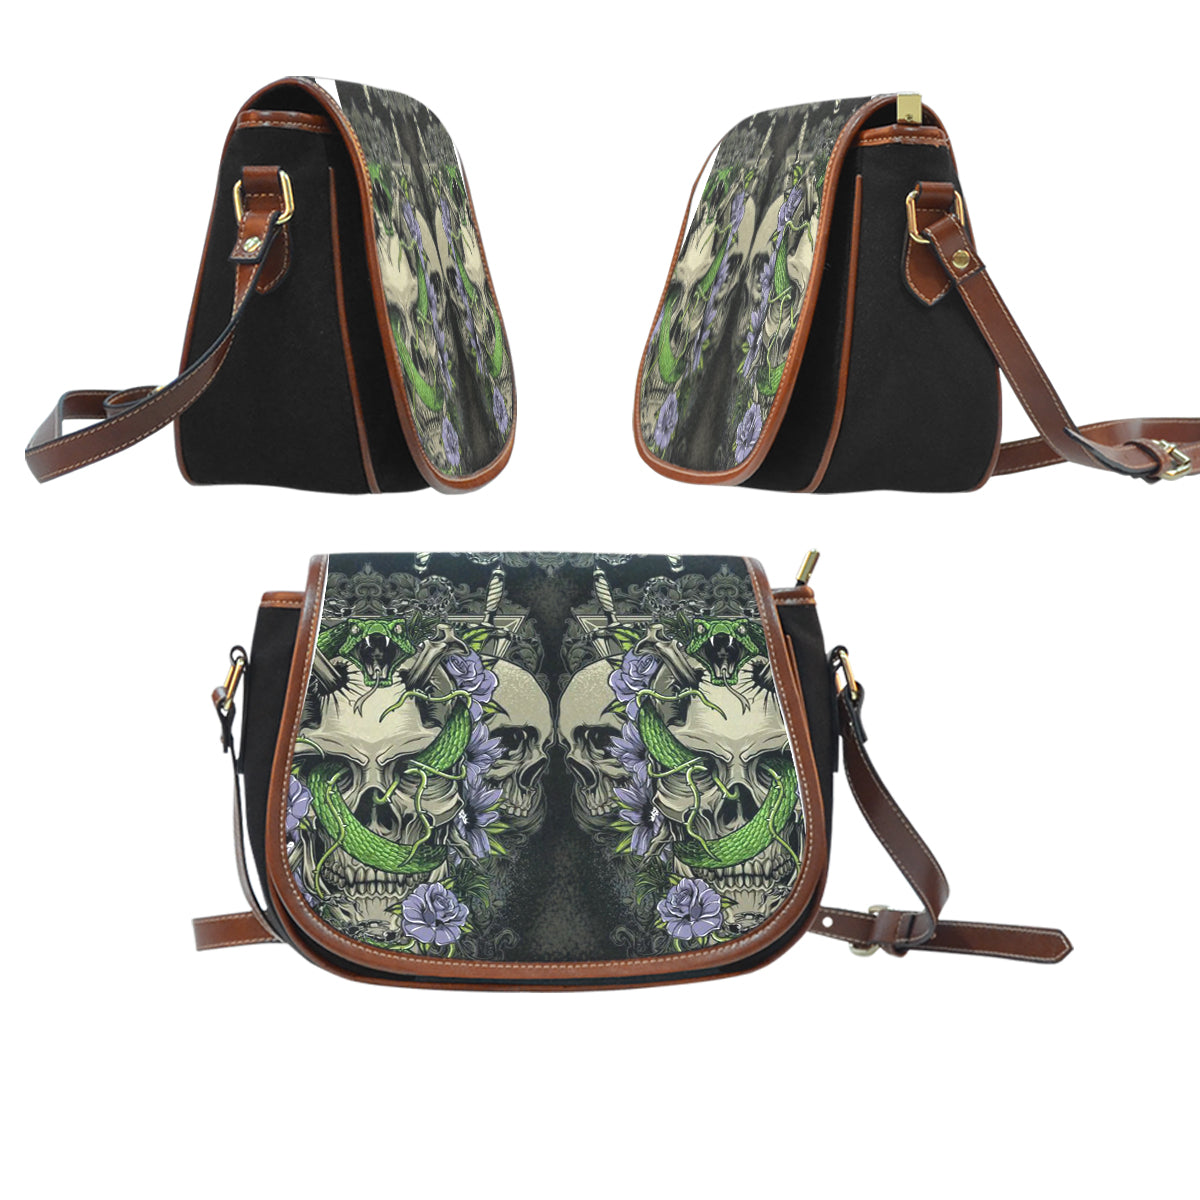 3D Skull Leather Cross-Body Carrying Strap Canvas Saddle Bags 004 - designfullprint